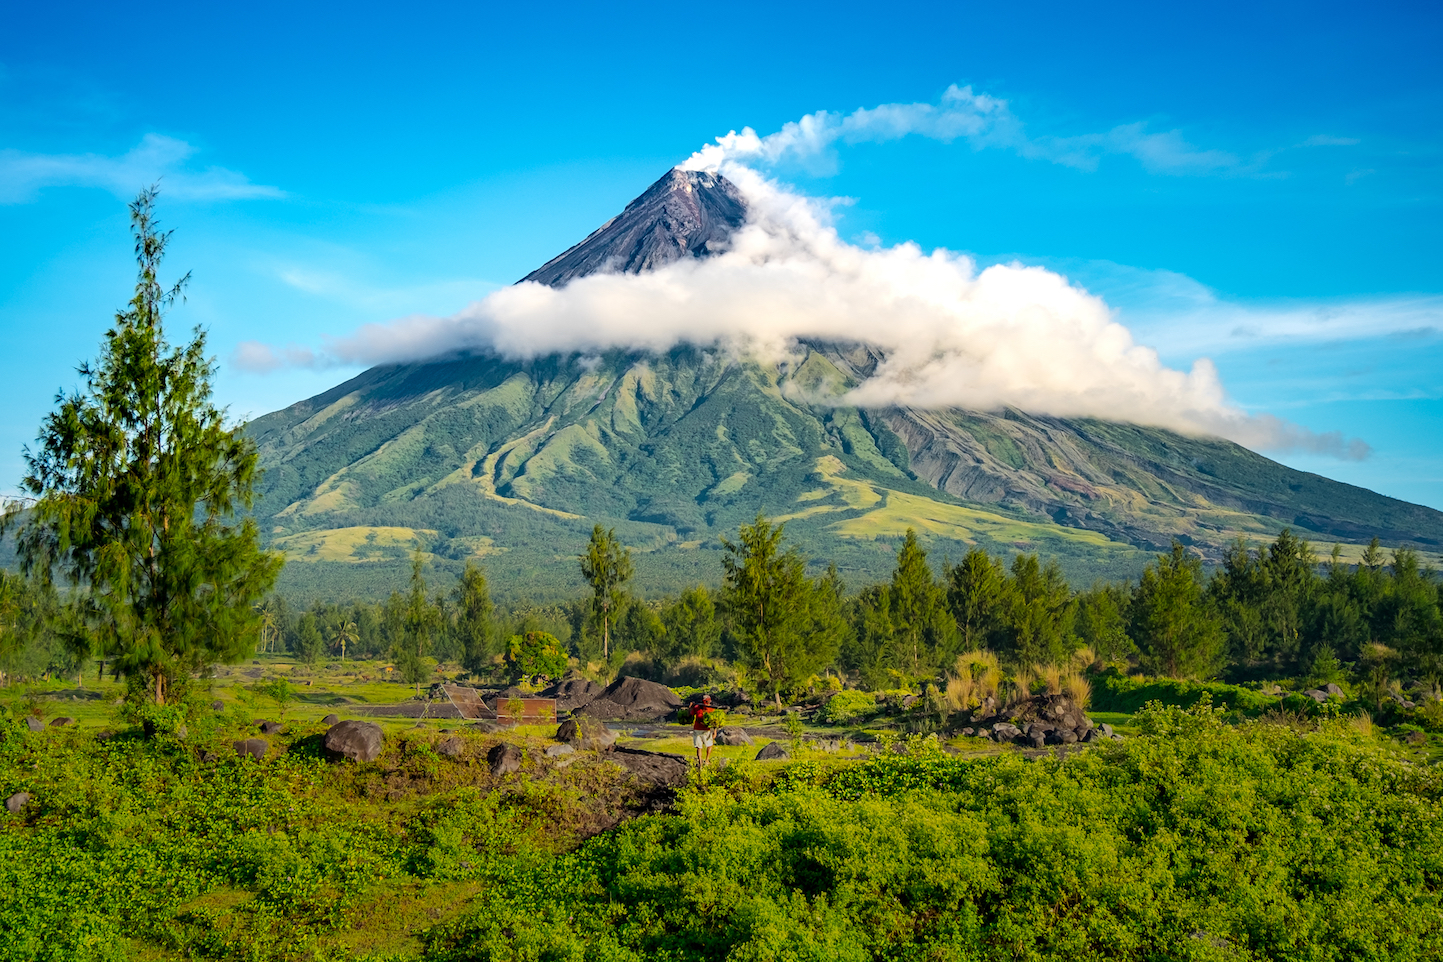 One of the world's most active volcanoes is threatening to erupt in the Philippines on the island of Luzon.